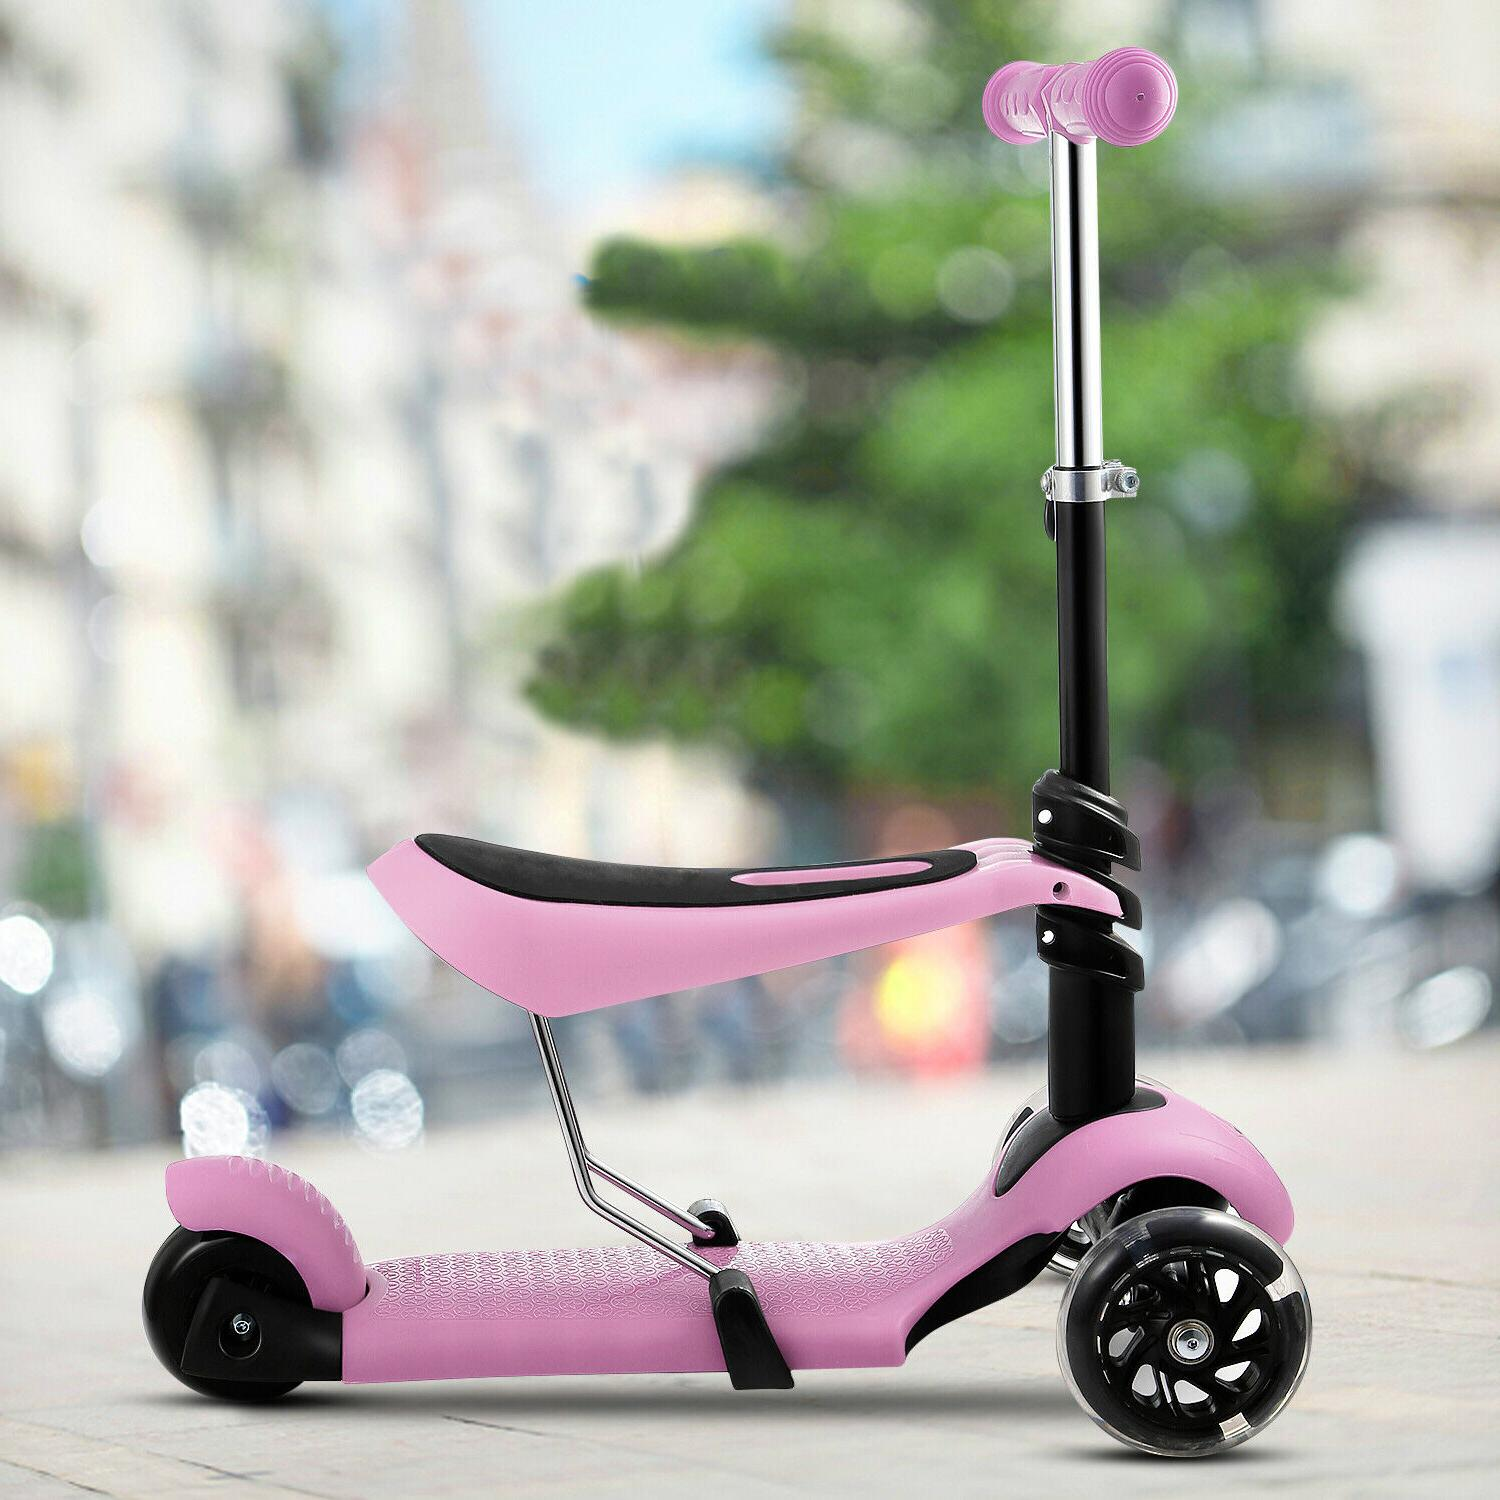 2-in-1 Scooter Removable Seat LED for Kids Boys